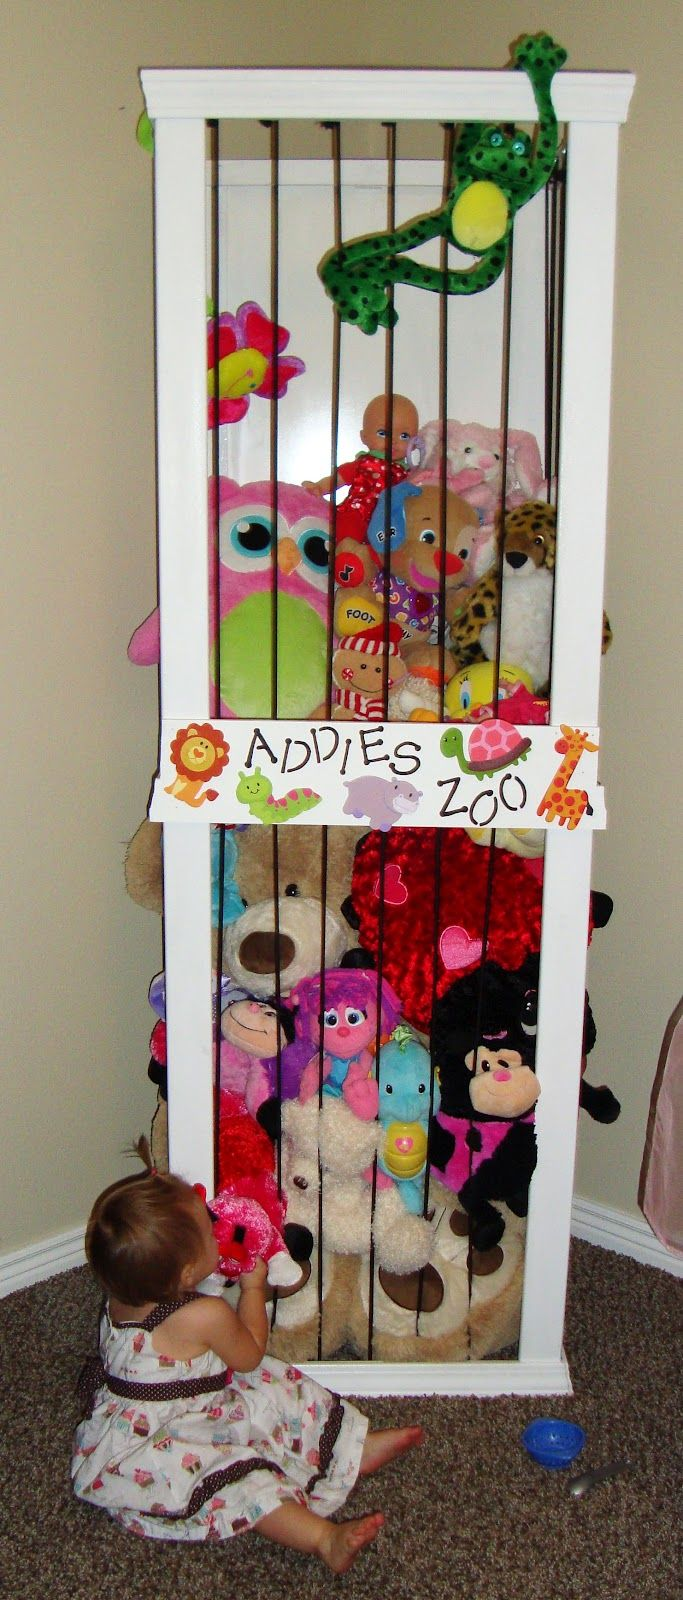 Stuffed Animal Storage Zoo- Tutorial!